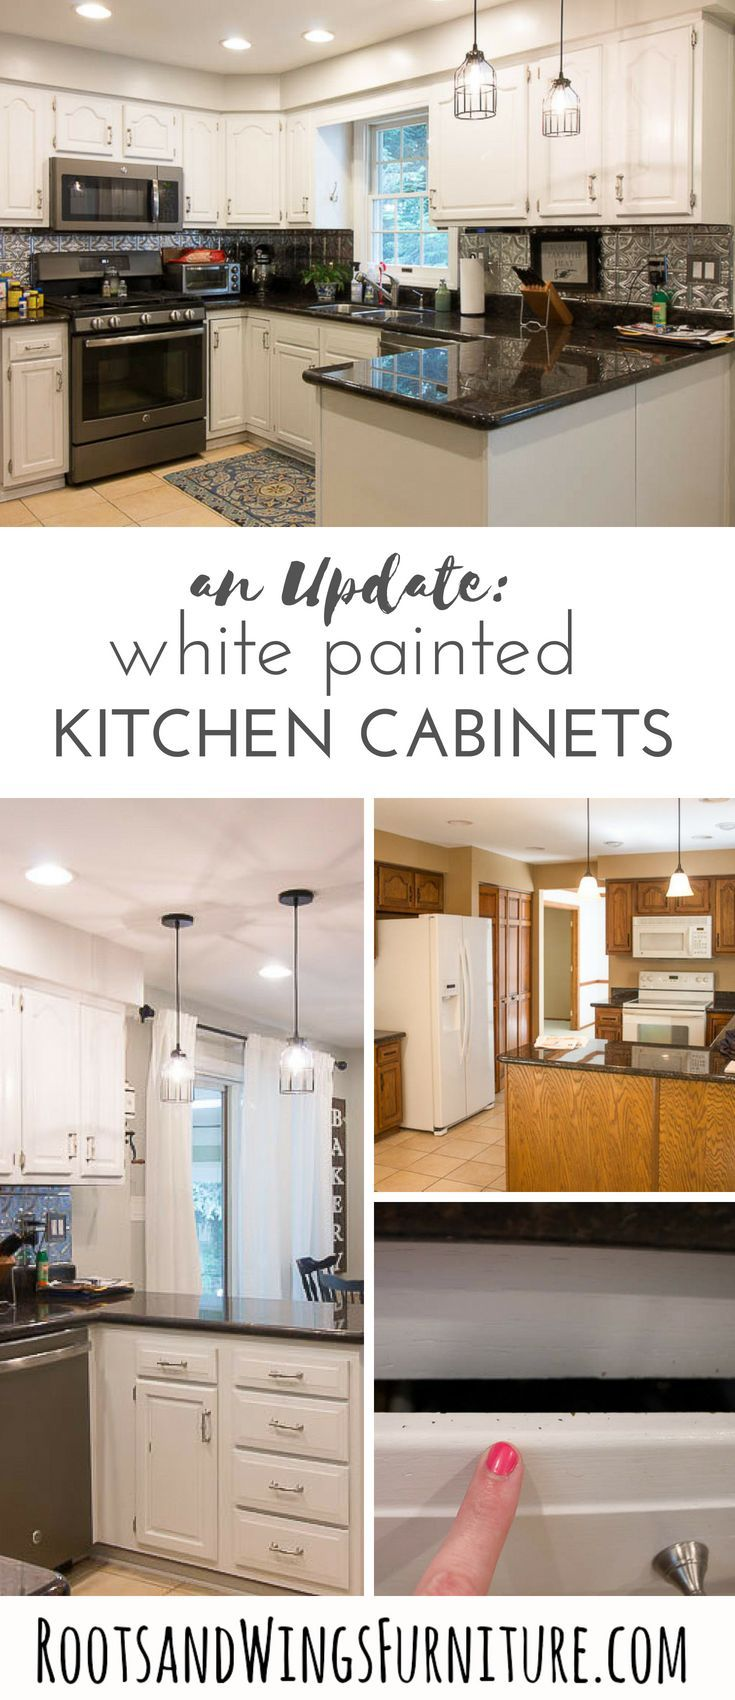 Painted Cabinet Update   Home Ideas   Painting cabinets, DIY ...